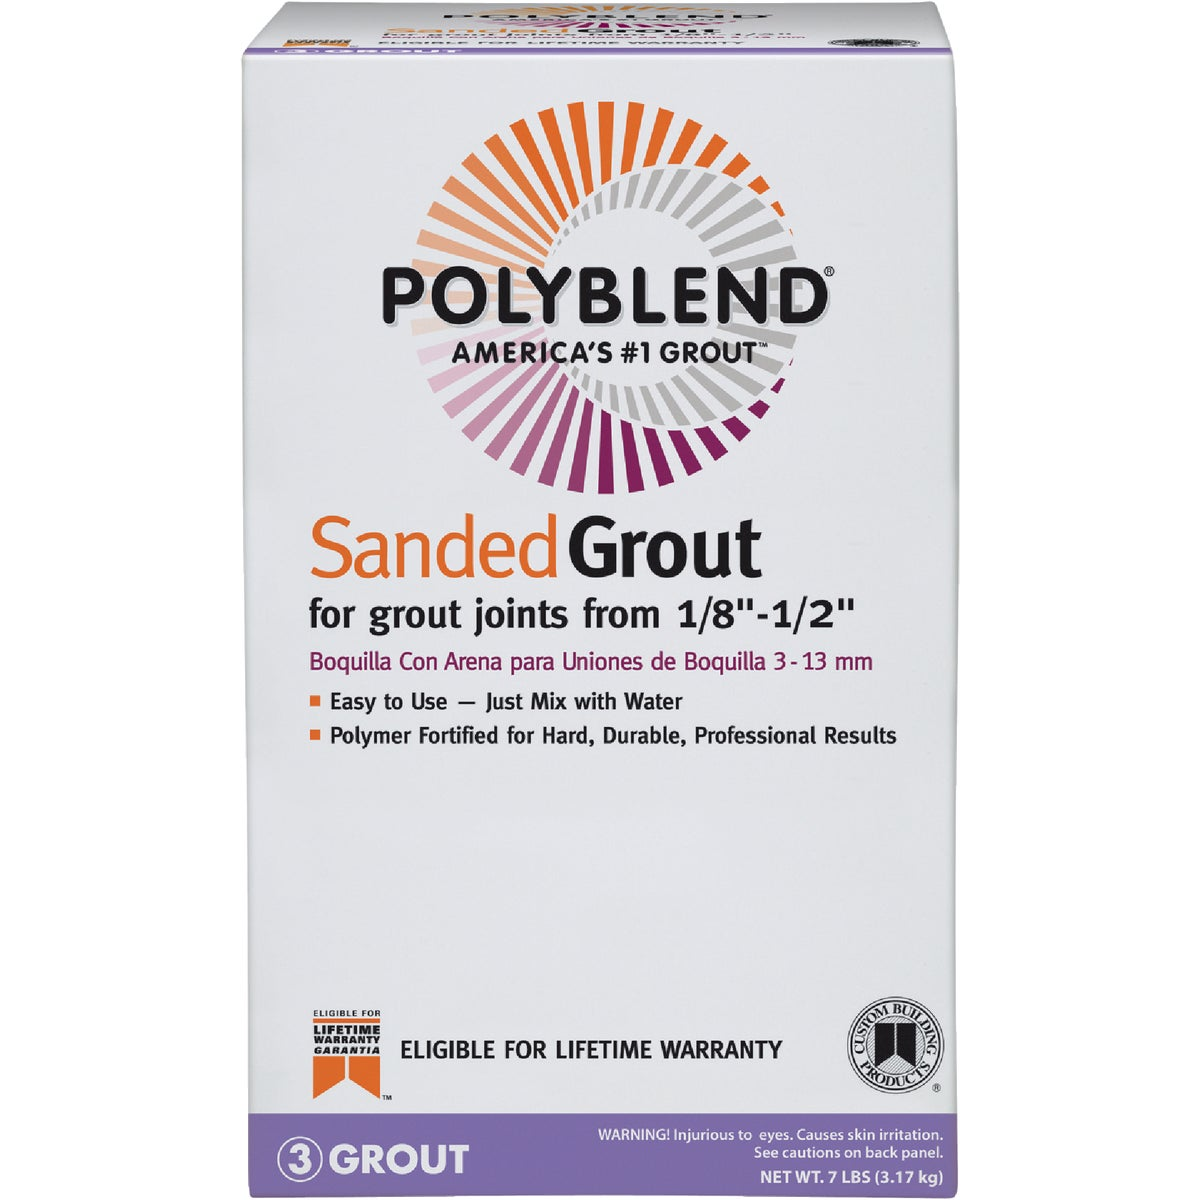 7LB SNW WHT SANDD GROUT - PBG117-4 by Custom Building Prod